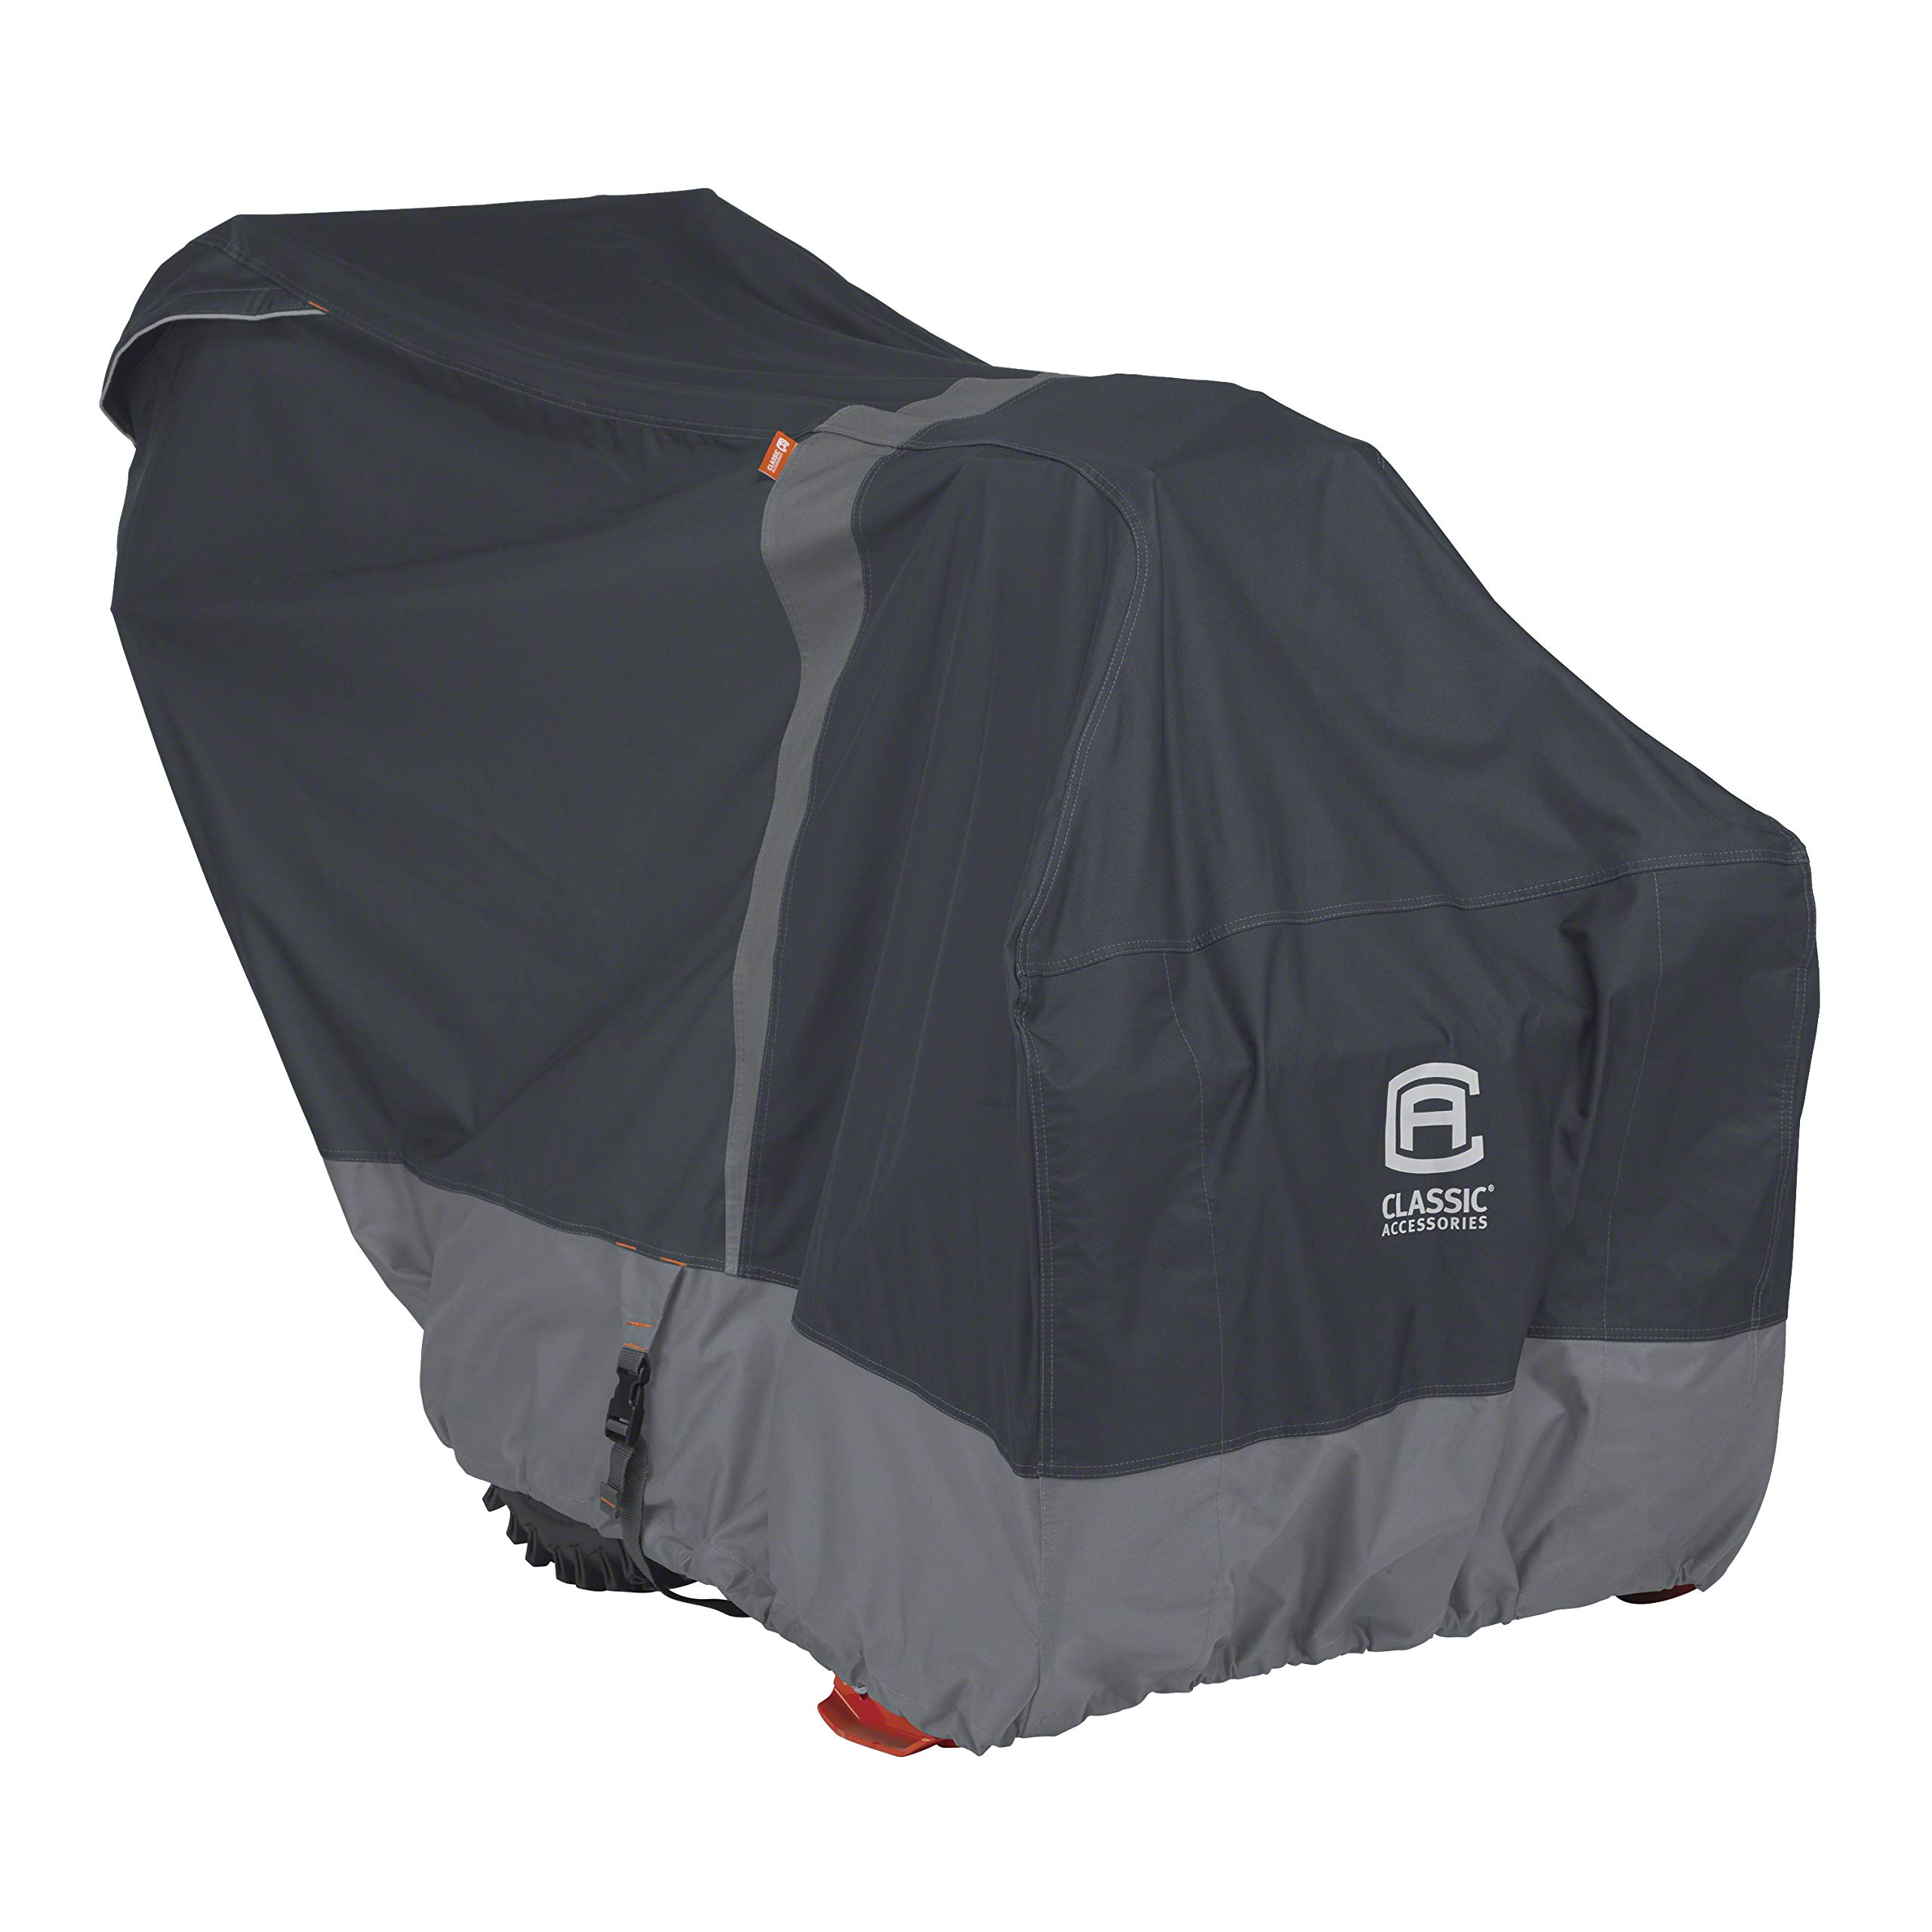 Classic Accessories StormPro RainProof Heavy-Duty Snow Thrower Cover by Classic Accessories